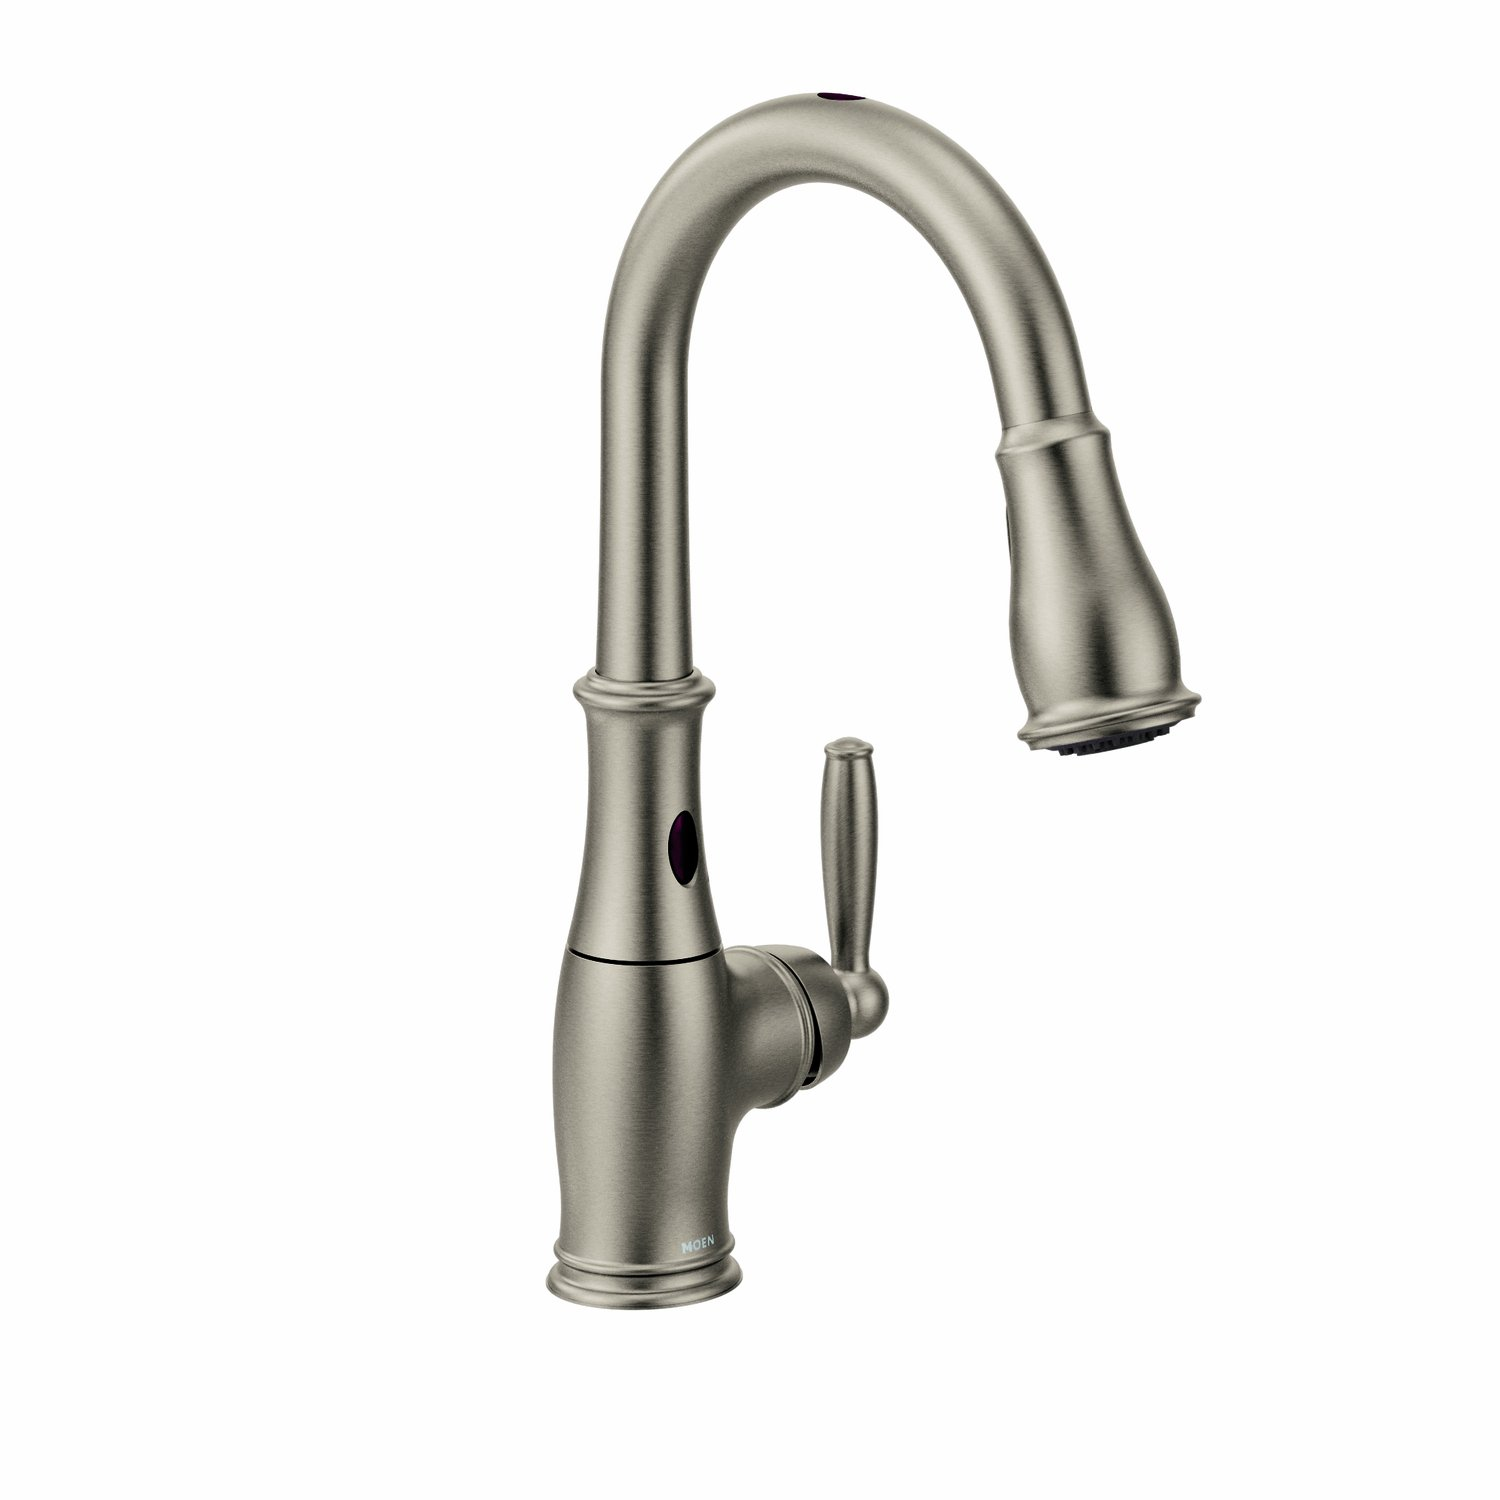 Moen Brantford Motionsense Two Sensor Touchless One Handle High Arc  Pulldown Kitchen Faucet Featuring Reflex, Spot Resist Stainless (7185ESRS)    Touch On ...